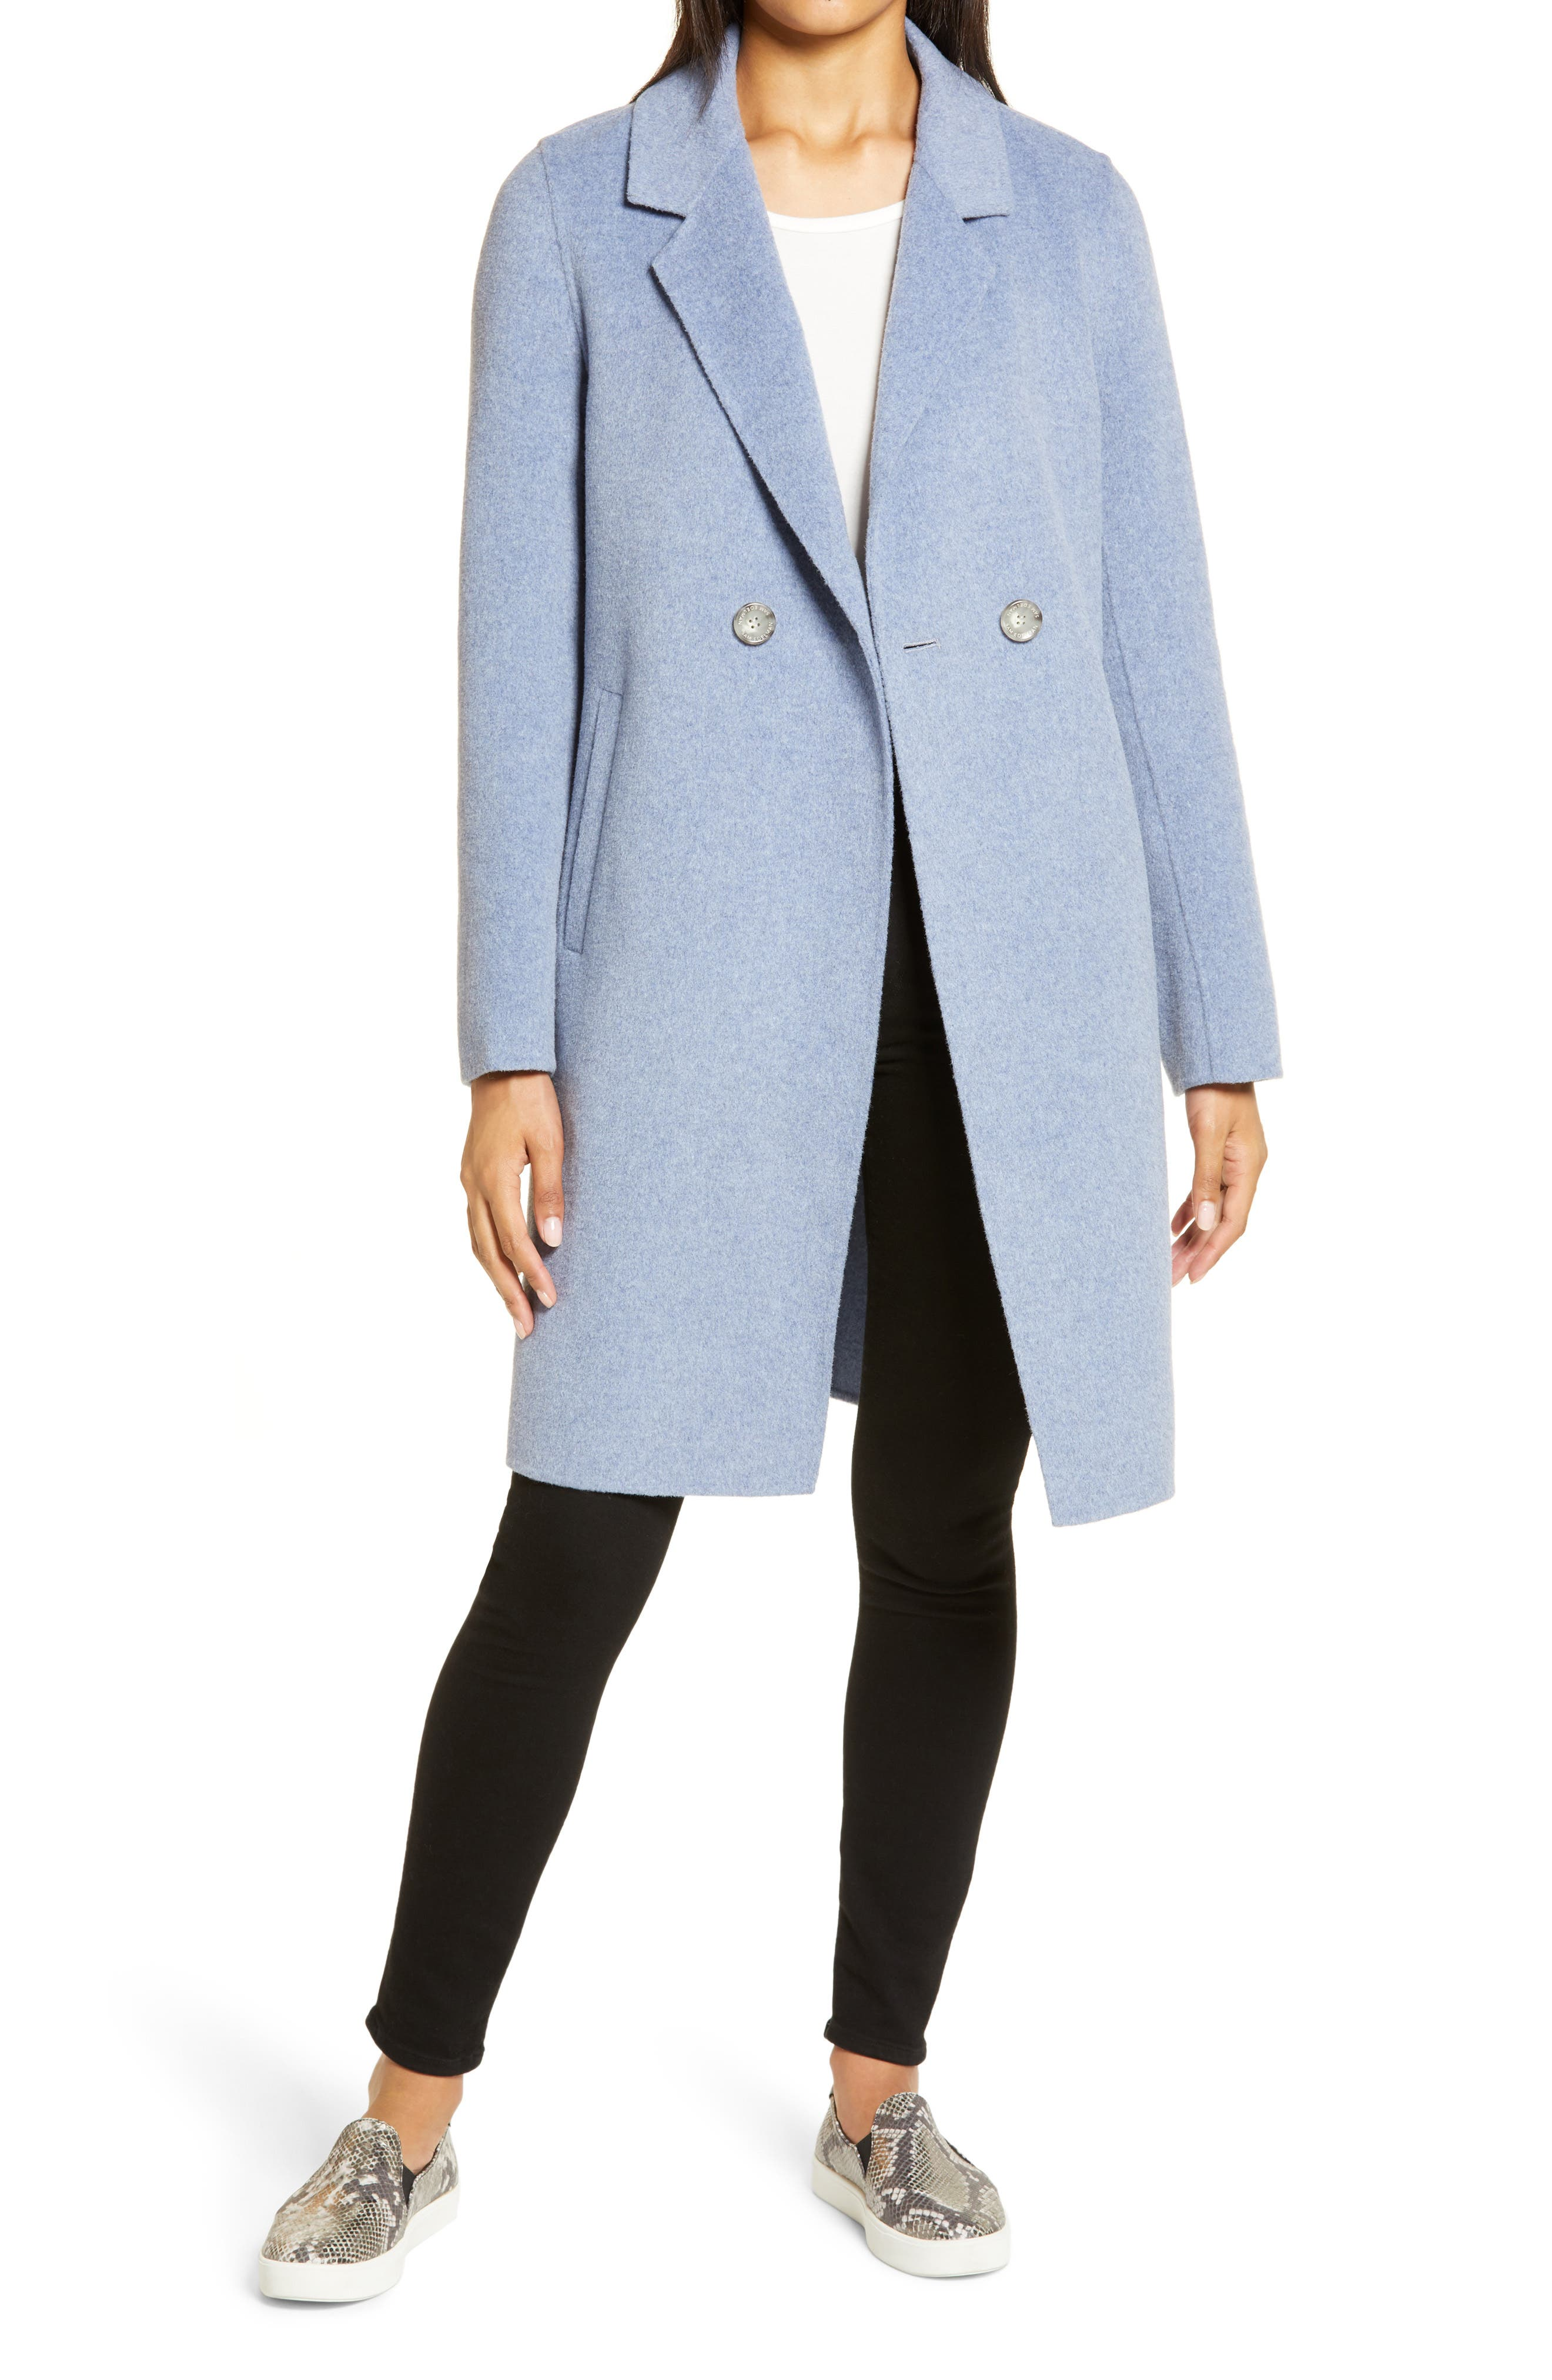 The notch-collar coat has been revamped in heathered blue with a longer silhouette that\\\'s perfect for cold-weather commutes. Style Name: Sam Edelman Notch Collar Coat. Style Number: 6067923. Available in stores.